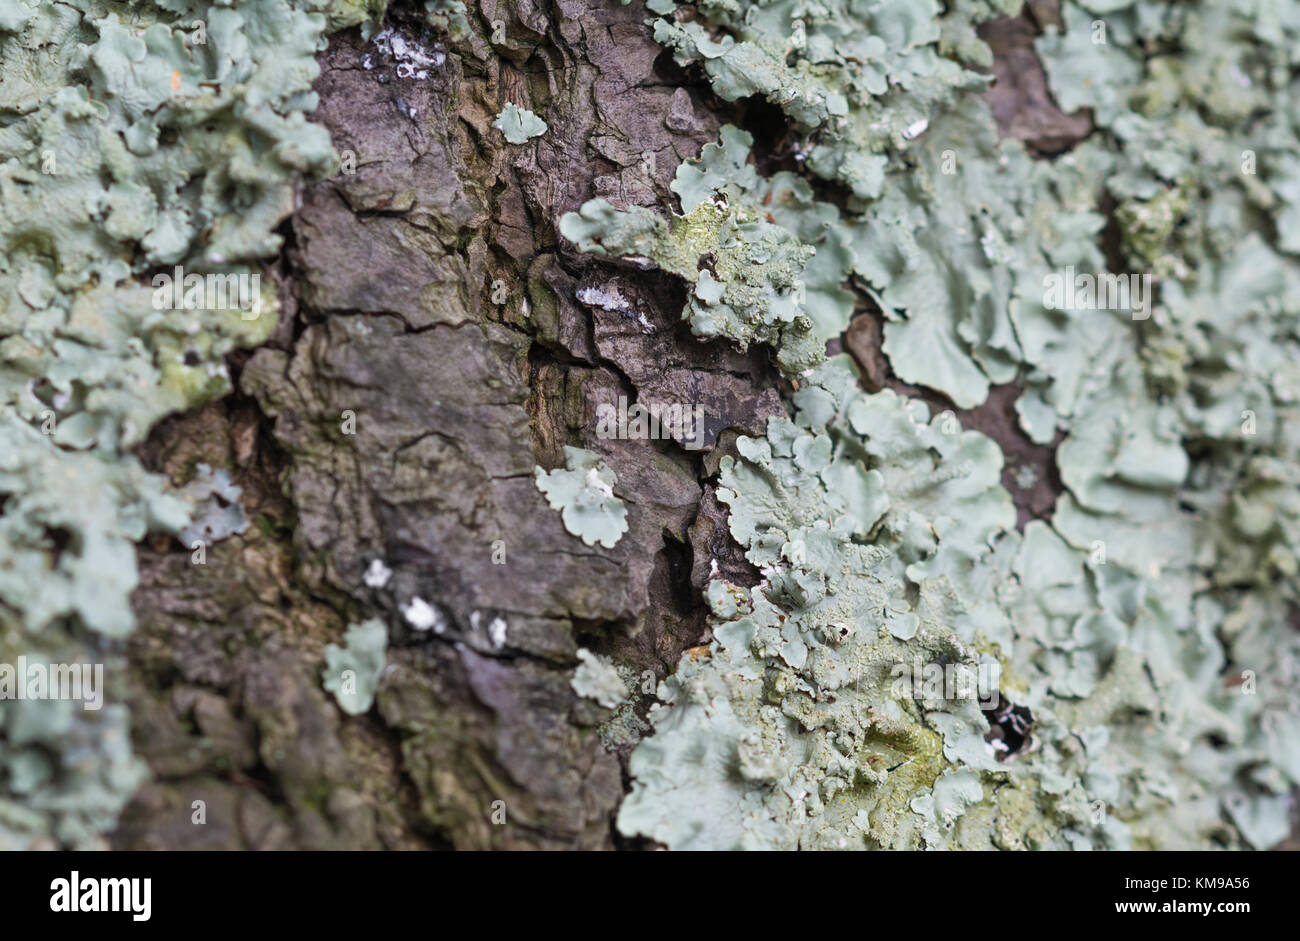 Lichens on the bark of a tree. Closeup. - Stock Image